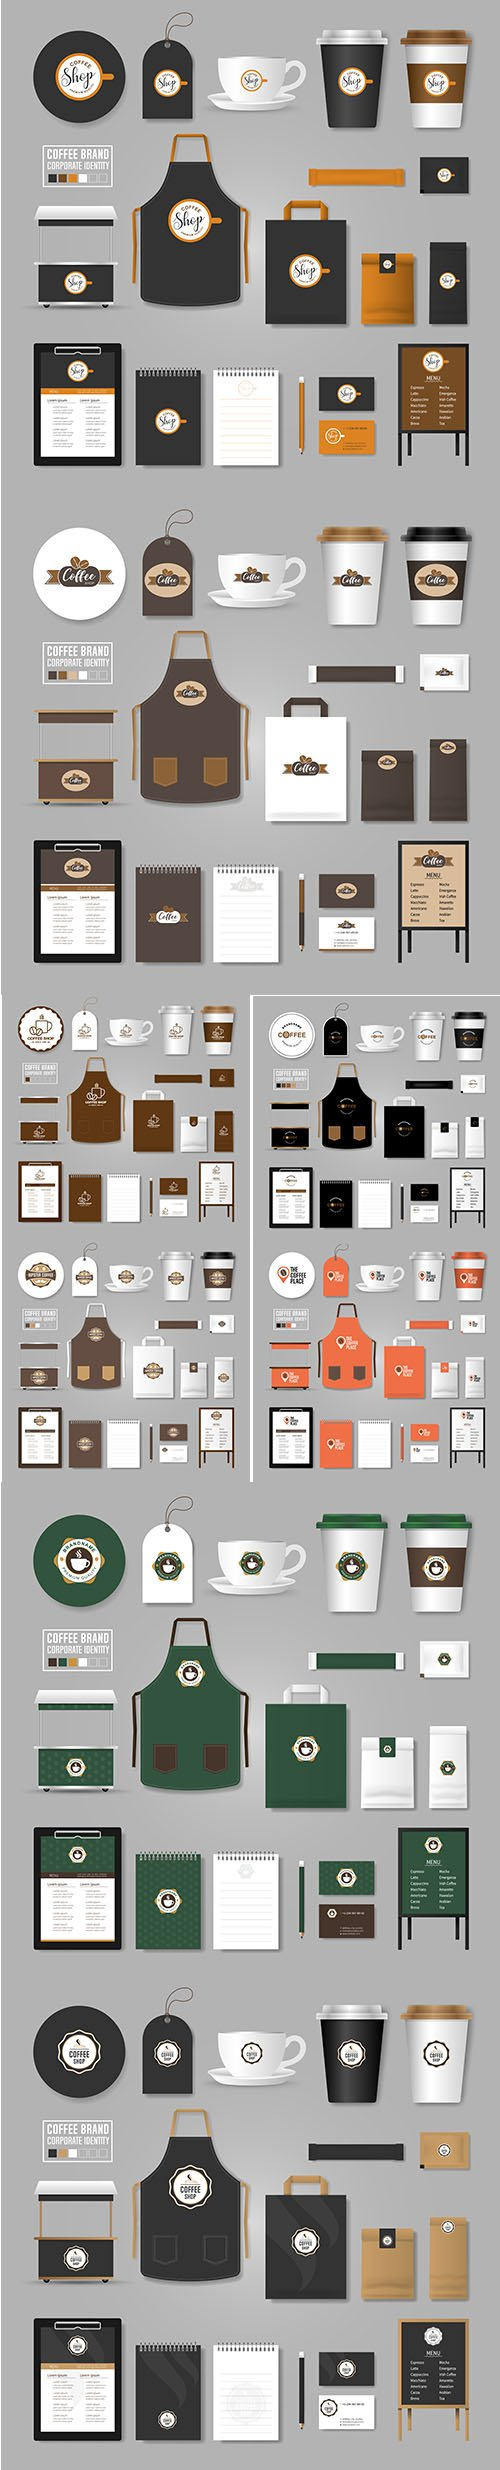 Corporate Identity Vector Template Logo Concept Coffee Shop Cafe Restaurant